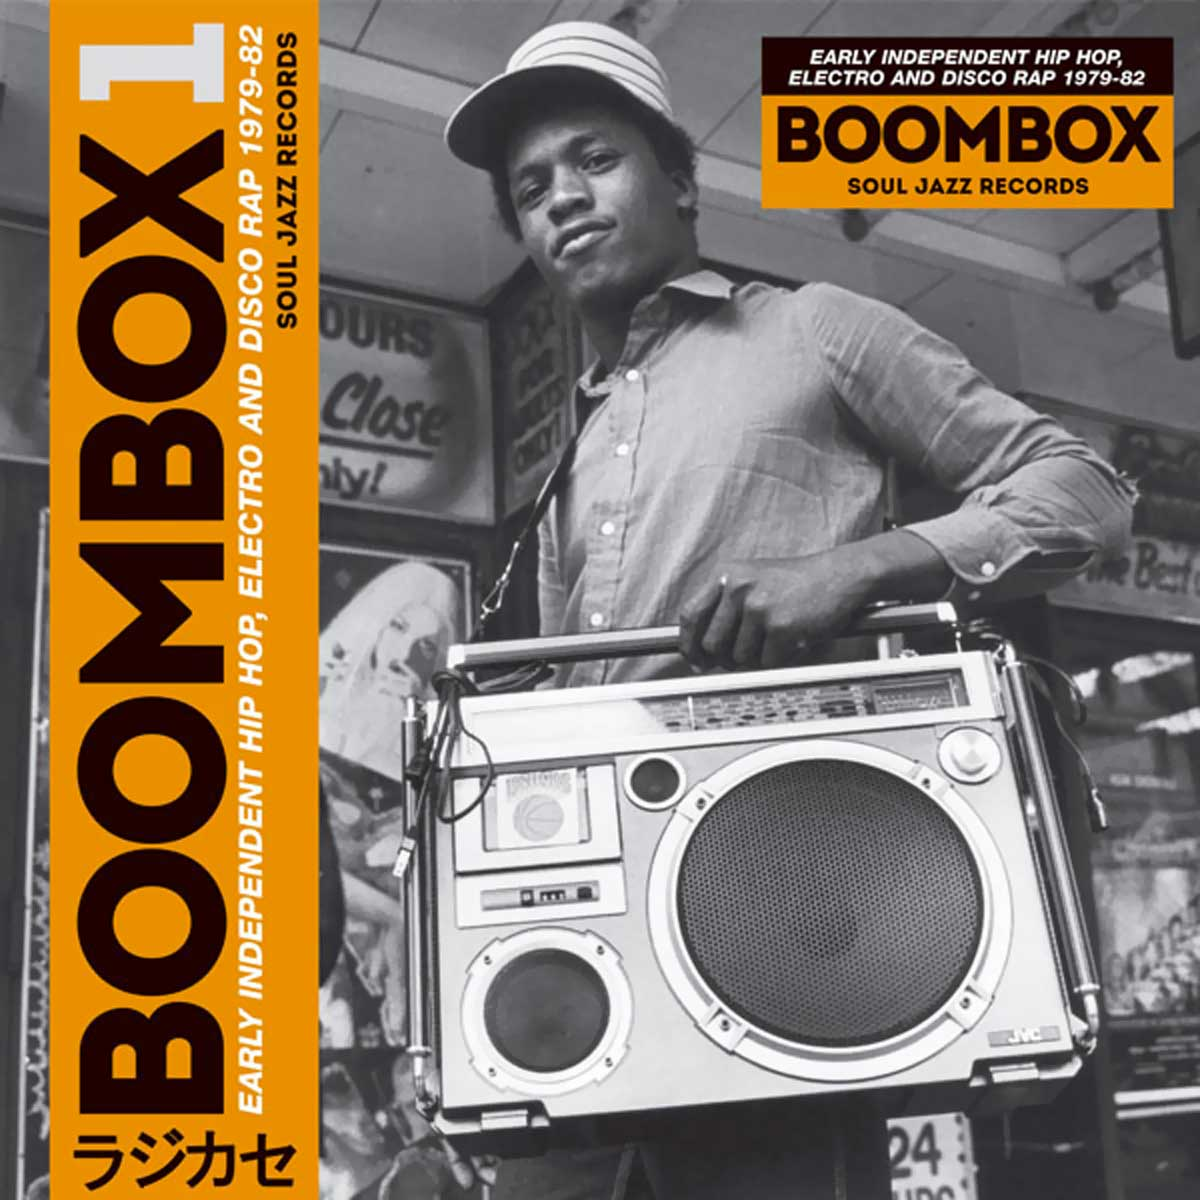 Boombox:Early Independent Hip Hop Electro and Disco Rap 1979-82